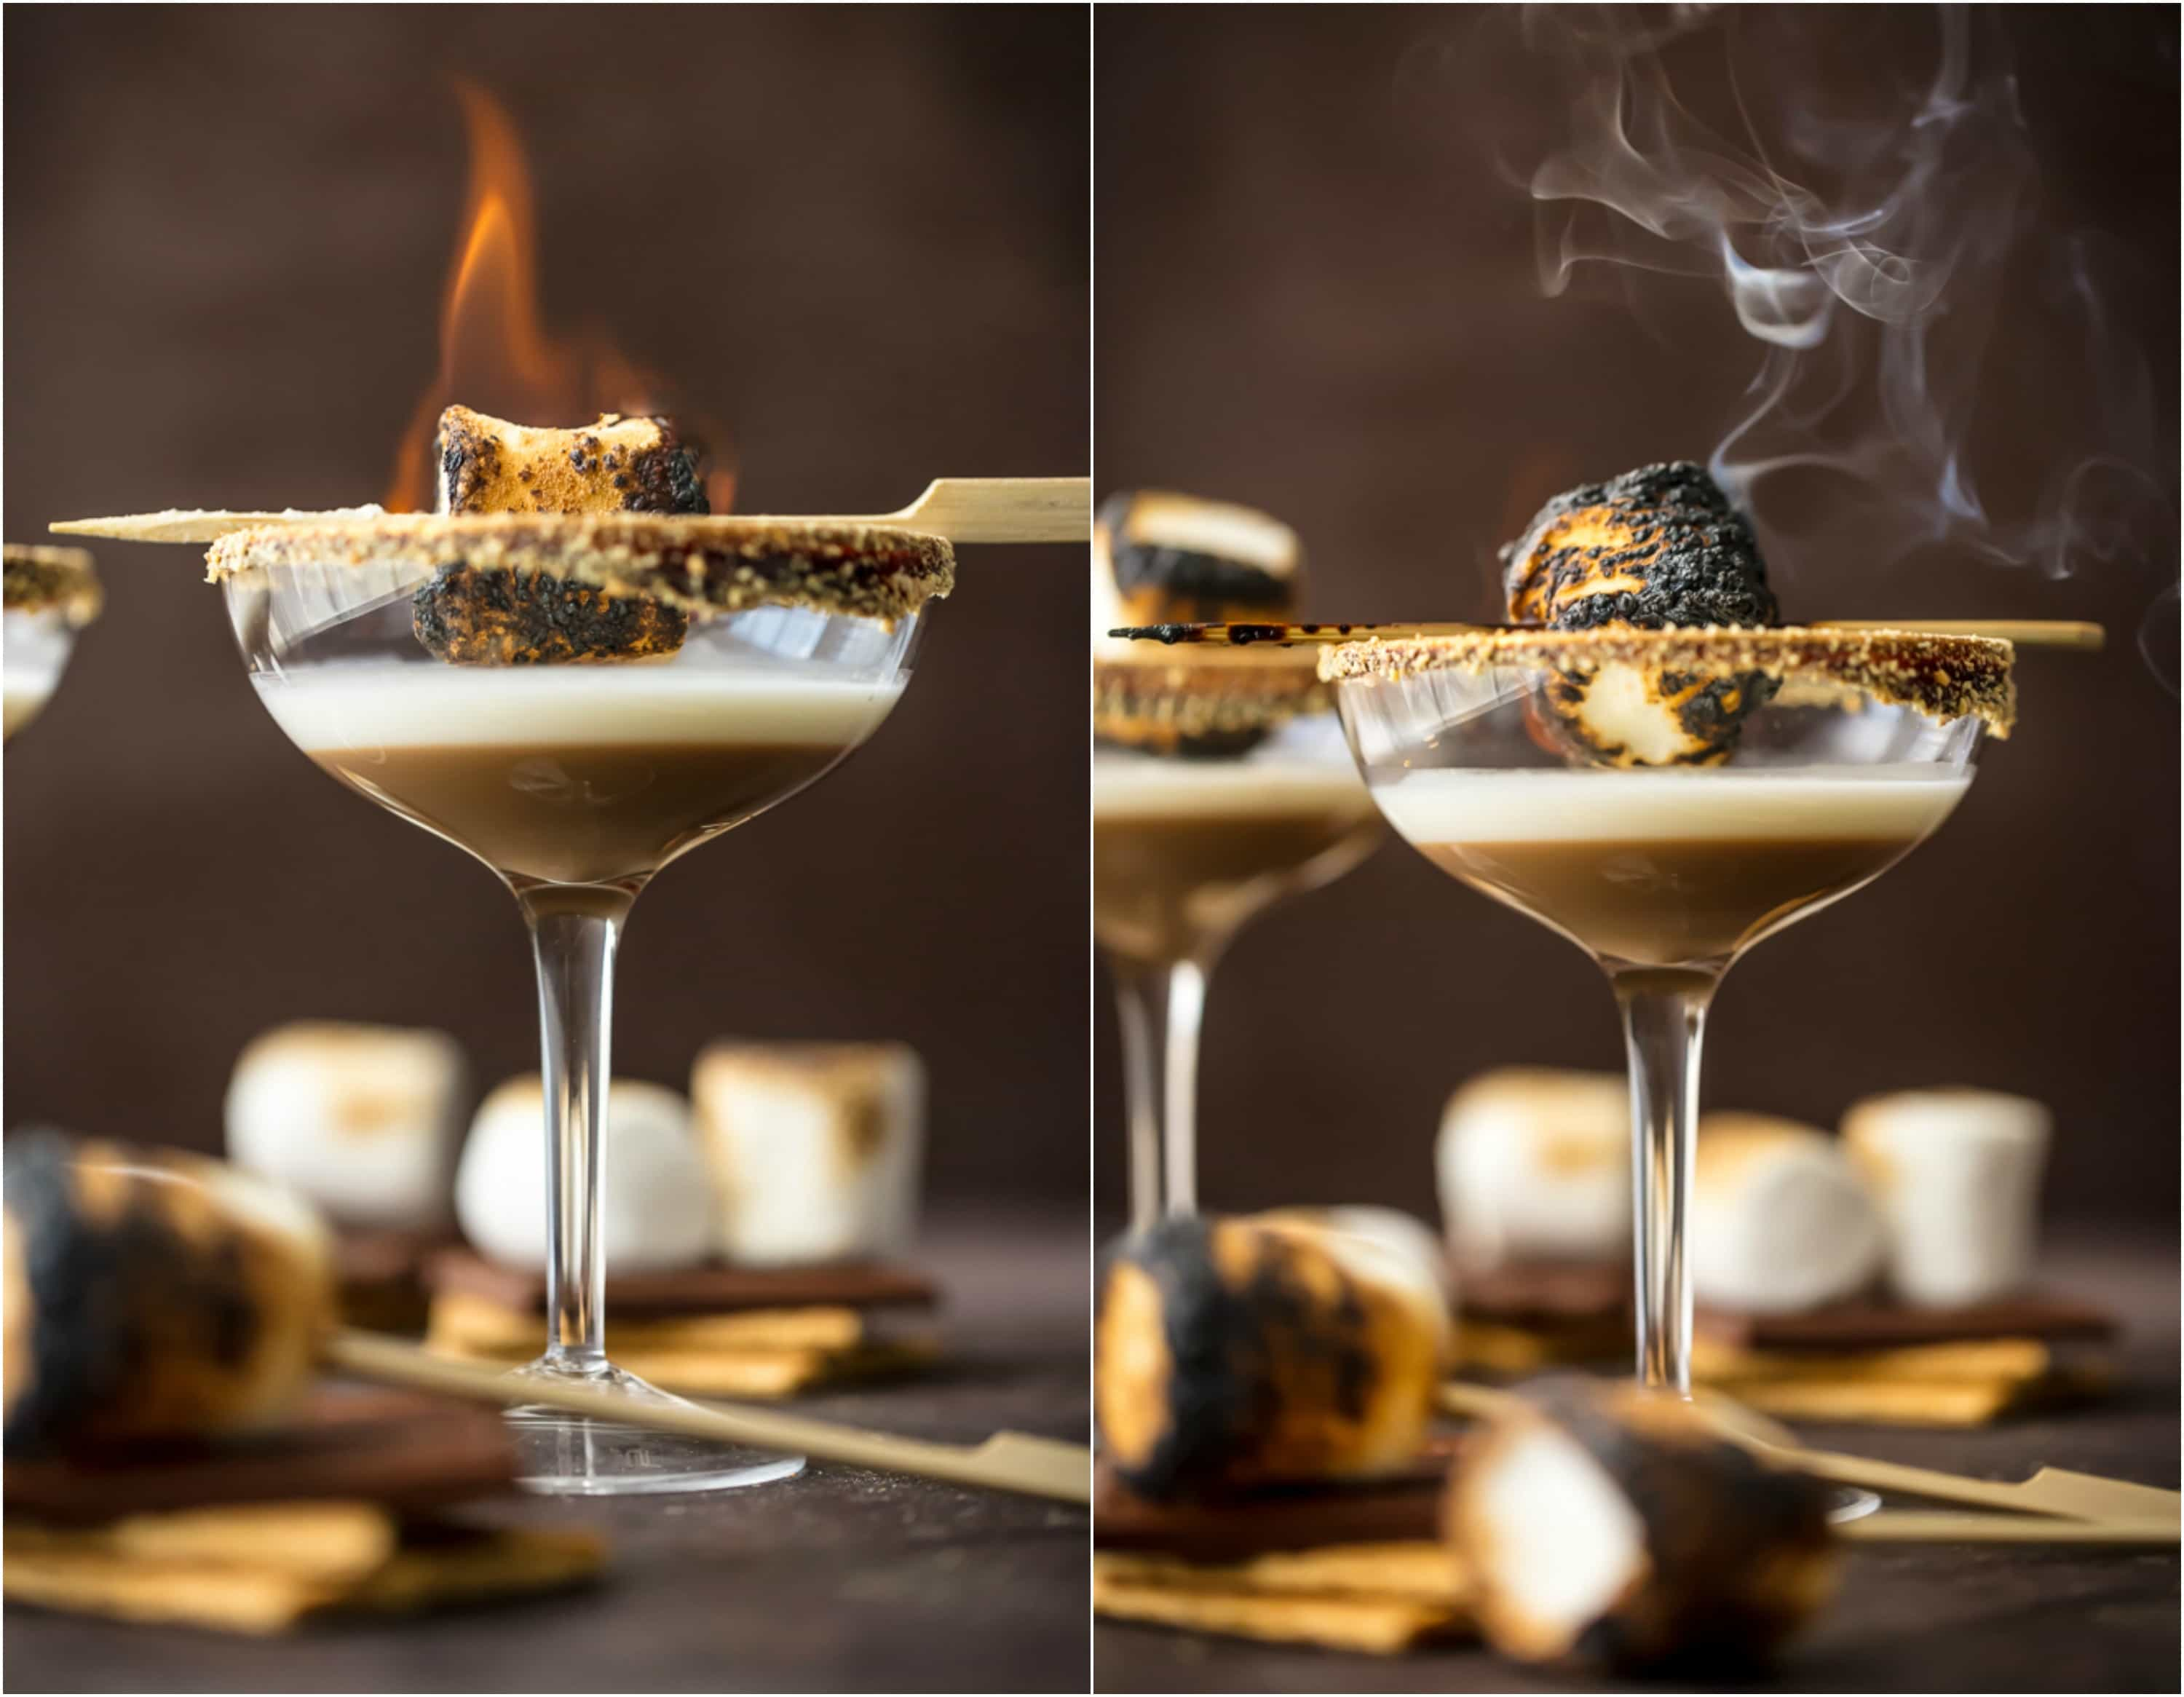 marshmallow being toasted in cocktail